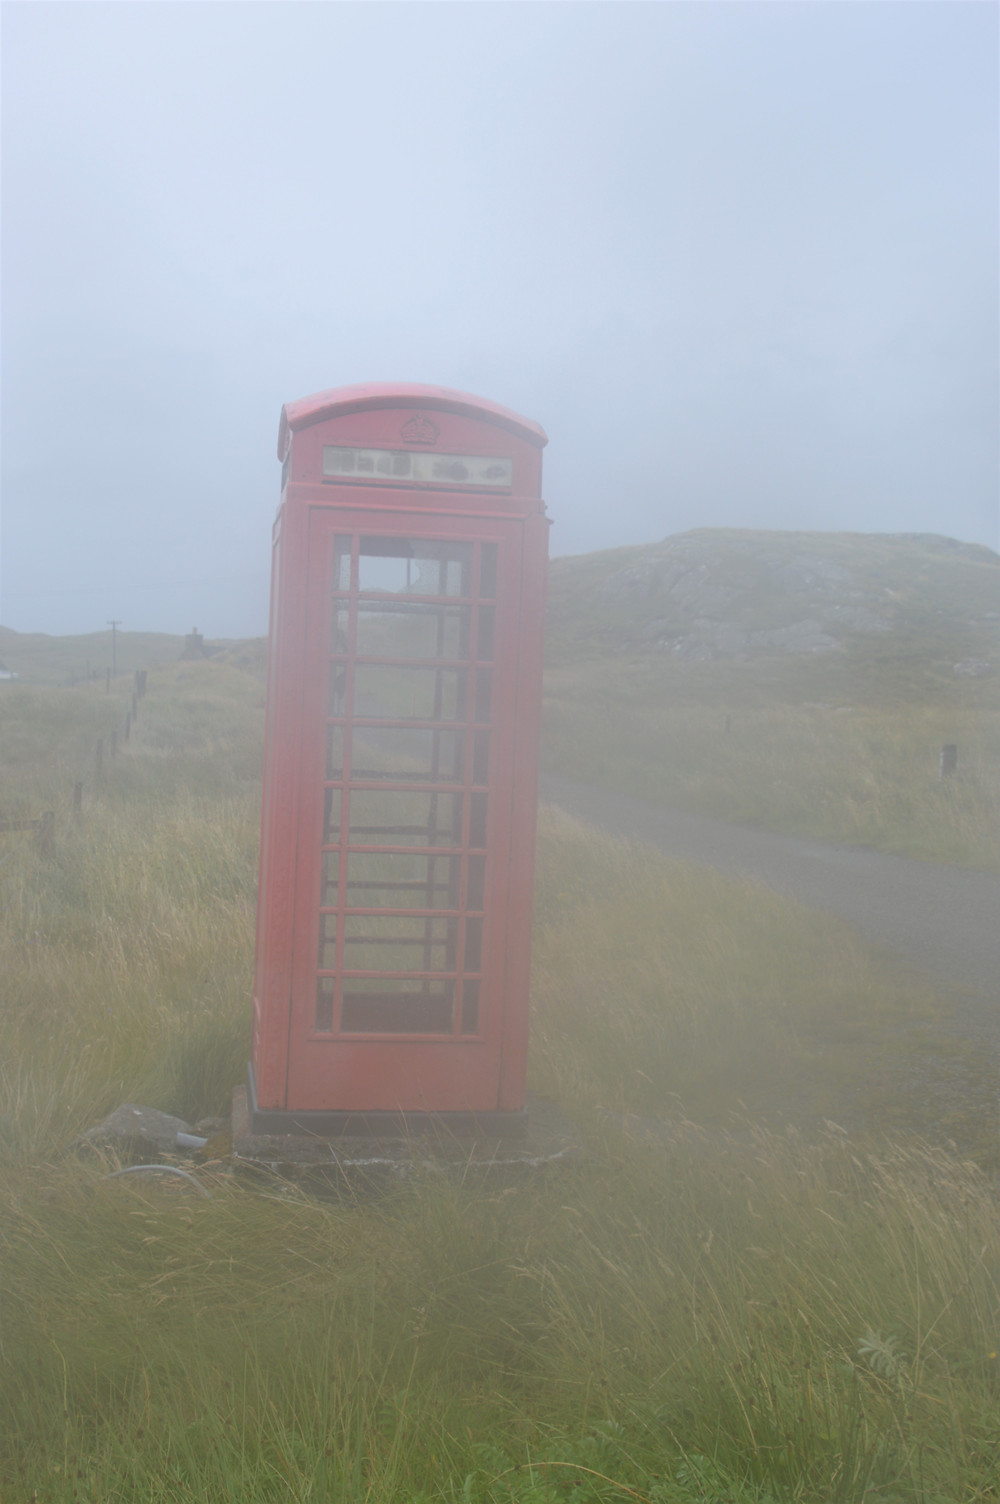 Fog cover landscape and telephone booth on Lewis and Harris in the Outer Hebrides